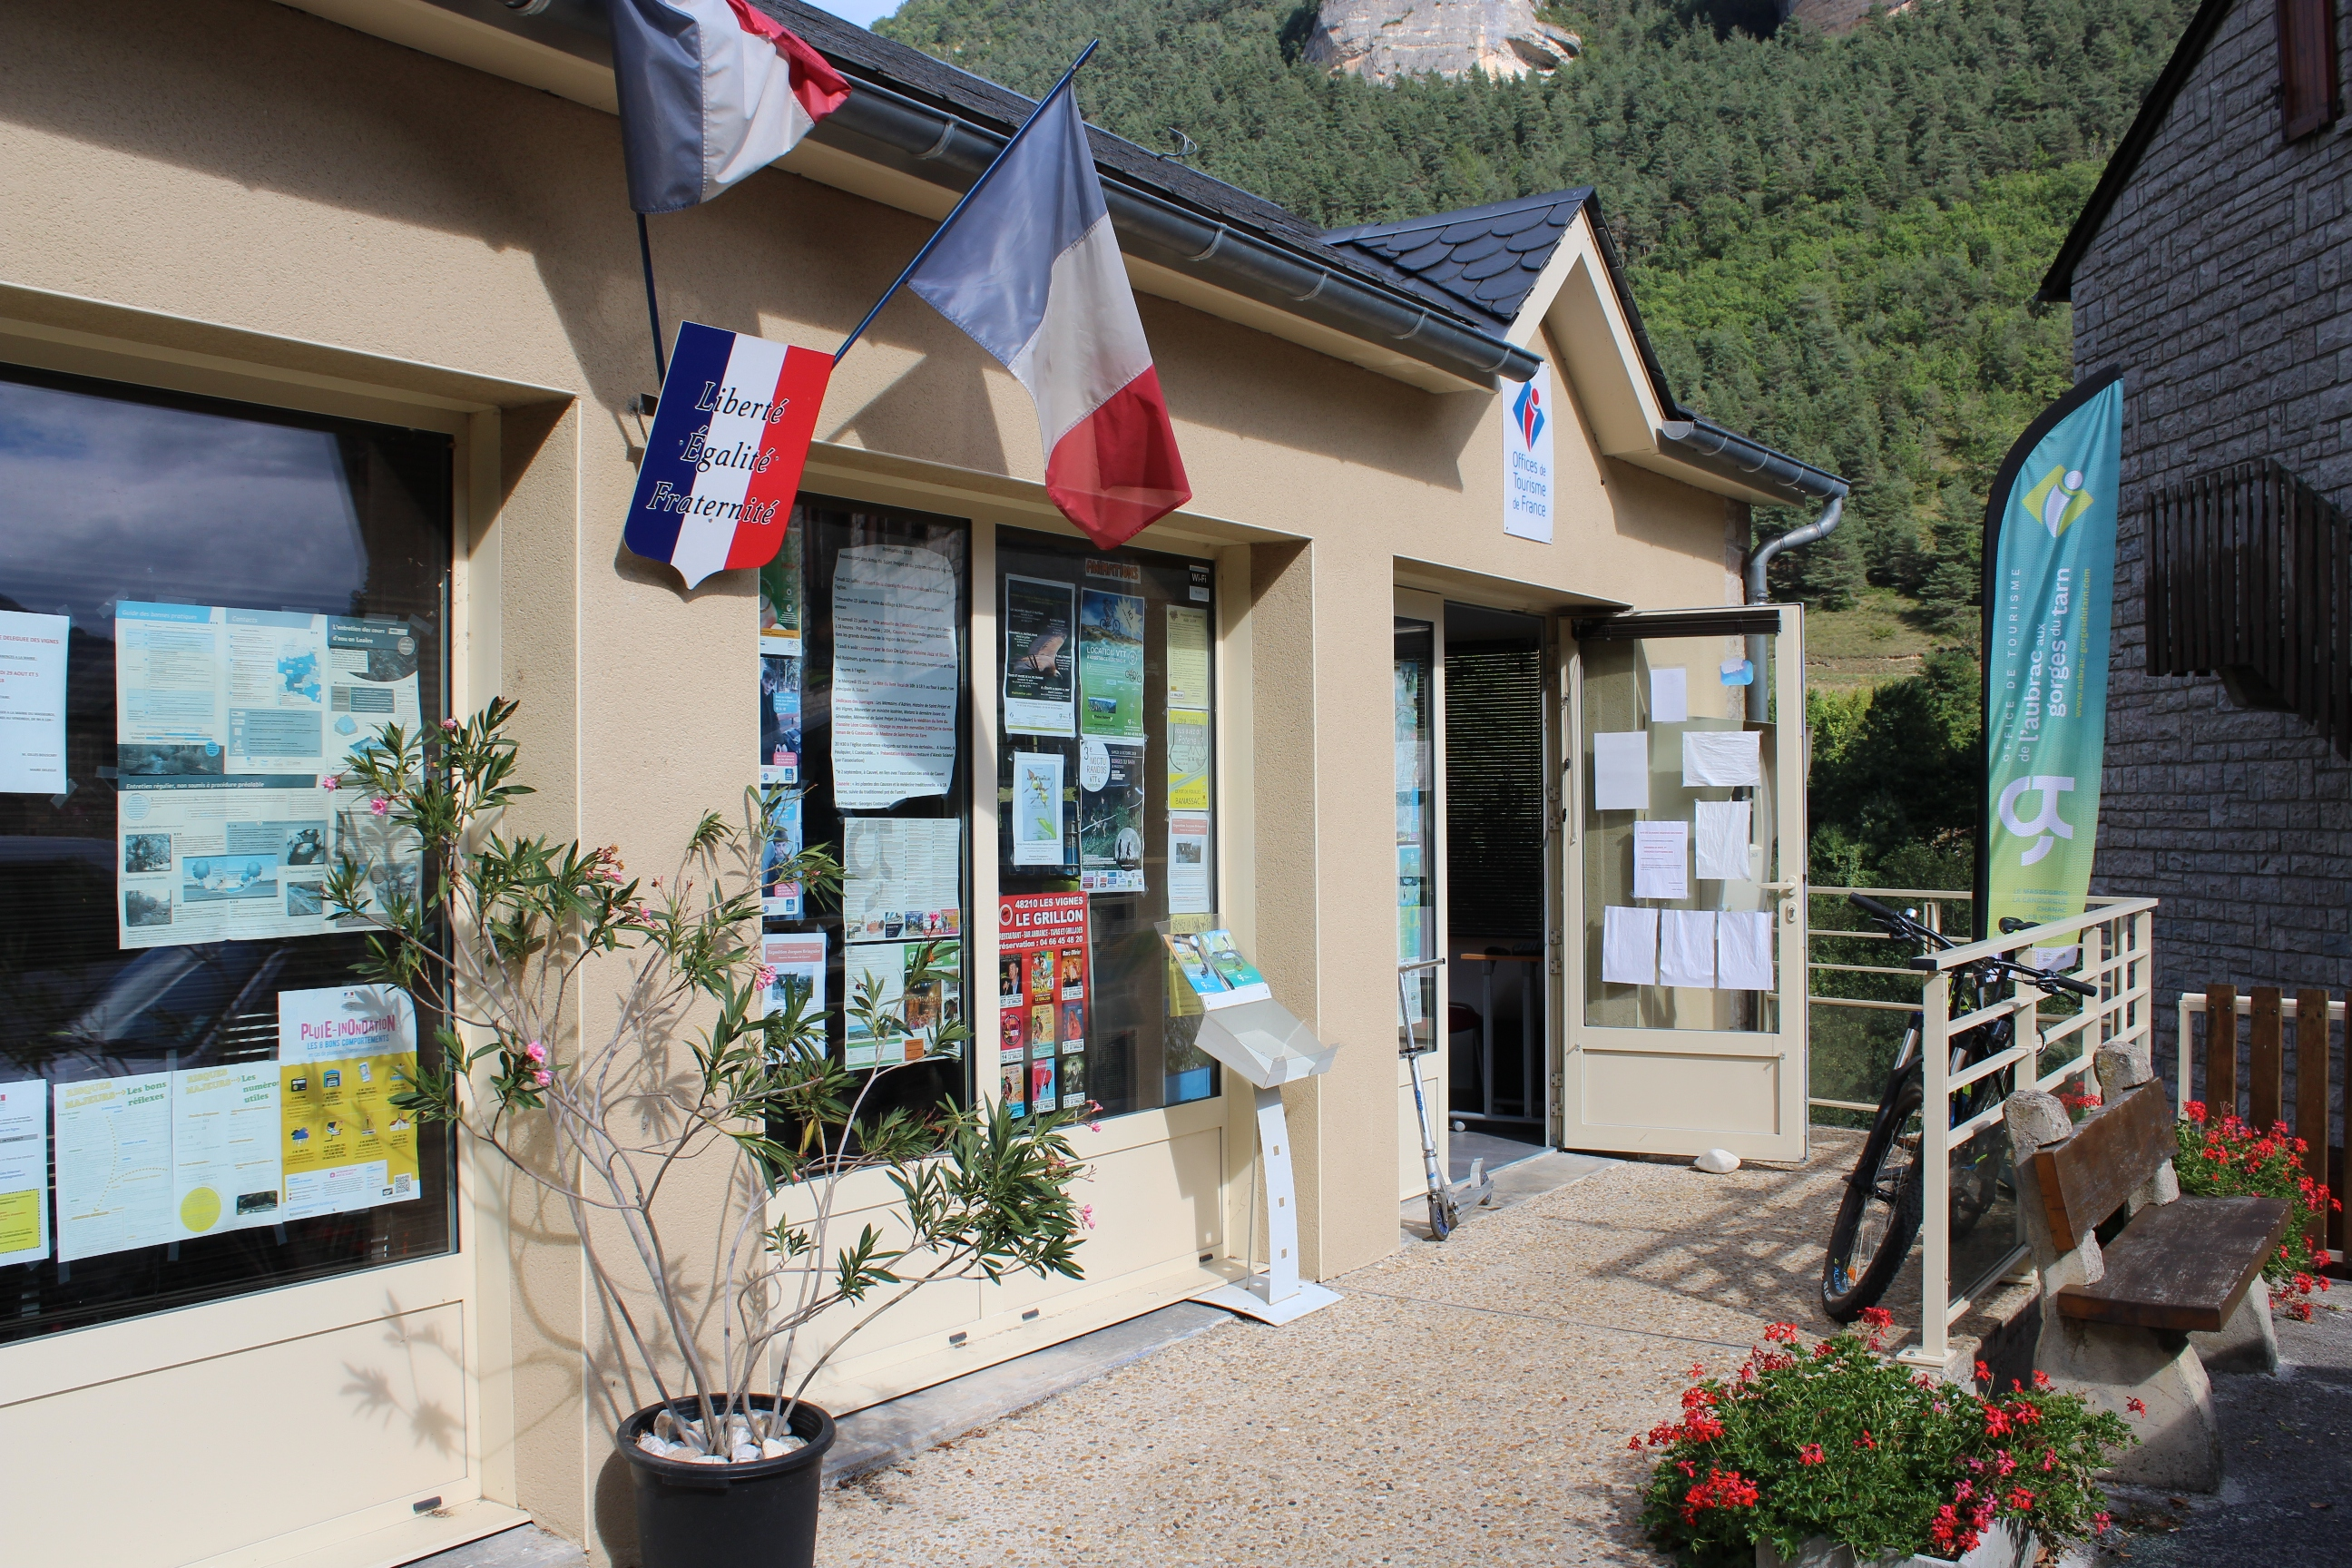 Les vignes massegros causses gorges loz re tourisme - Office tourisme les mathes ...